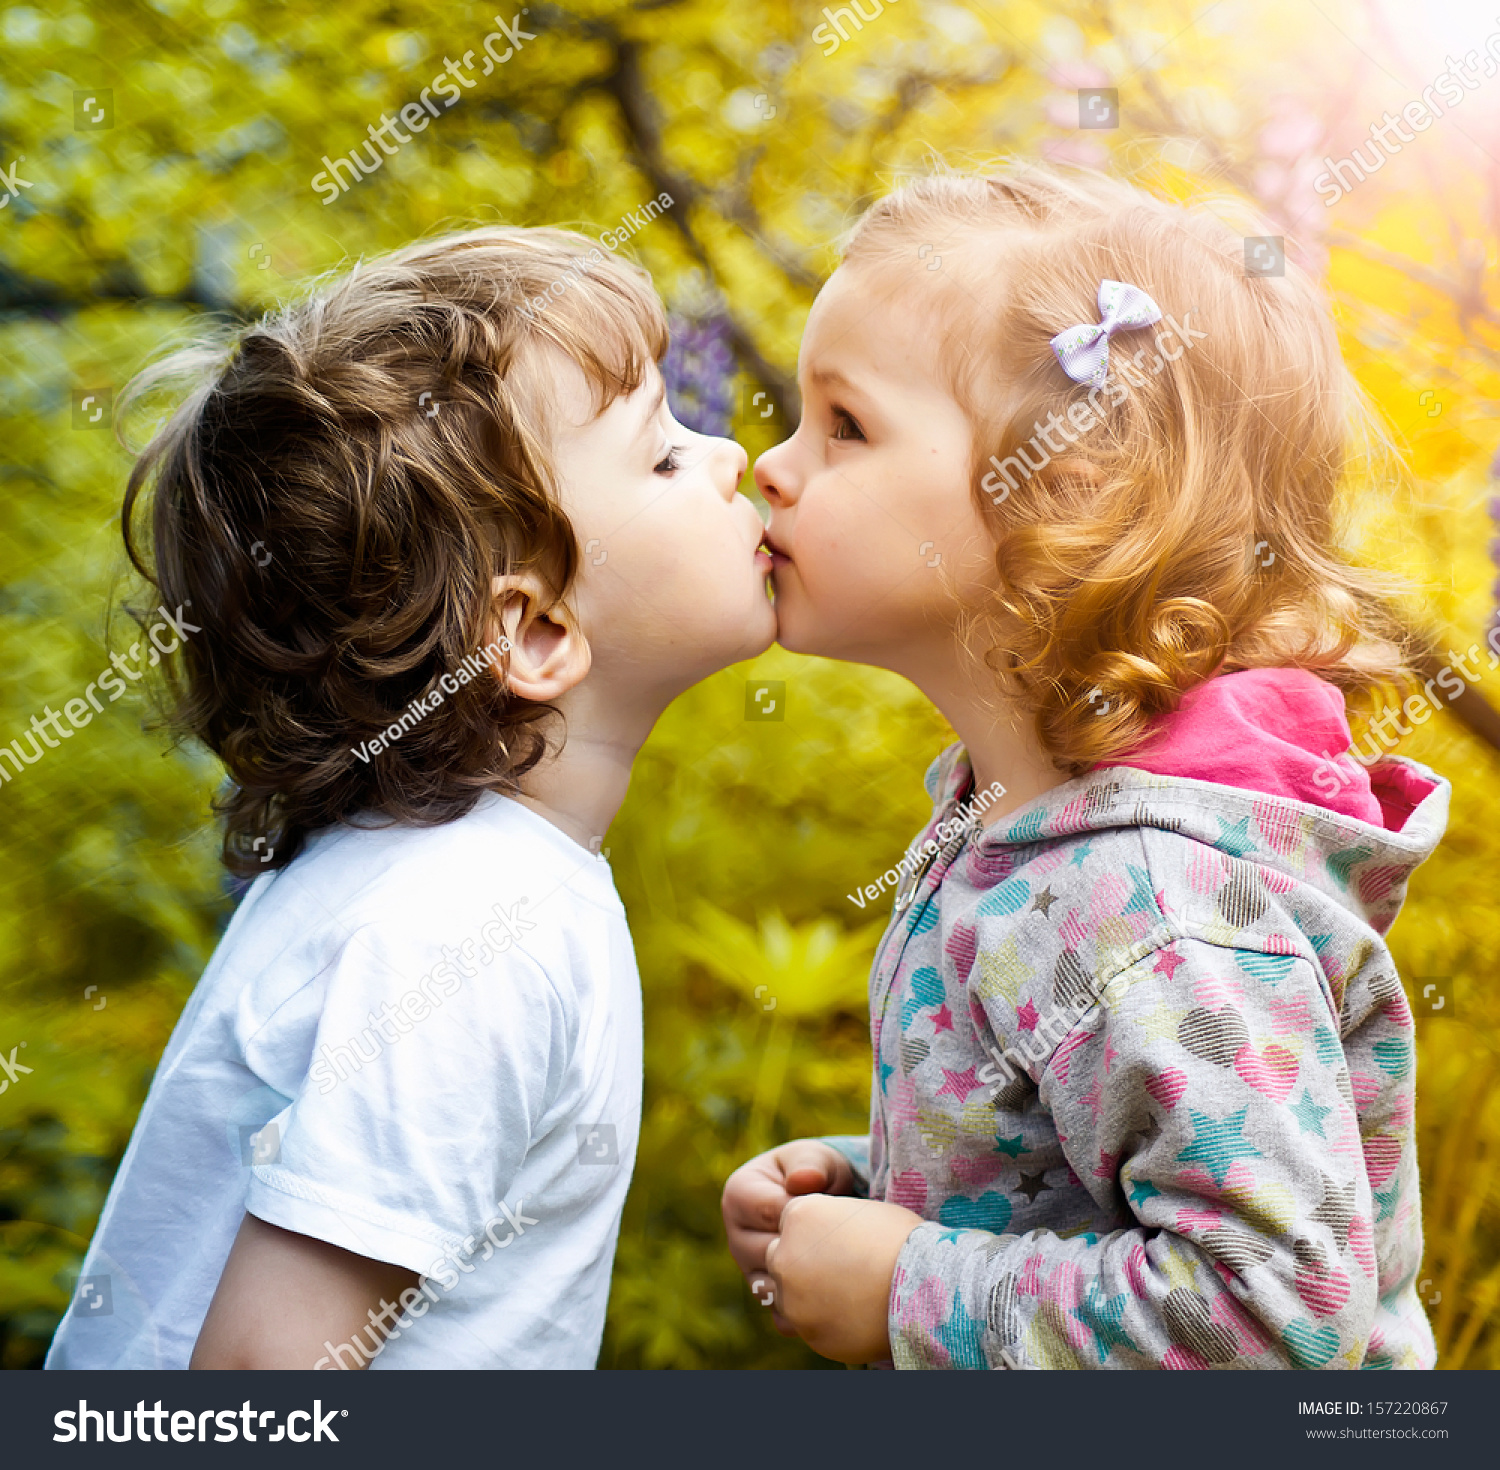 Little Boy Kissing Girl Stock Photo 157220867 - Shutterstock-7782